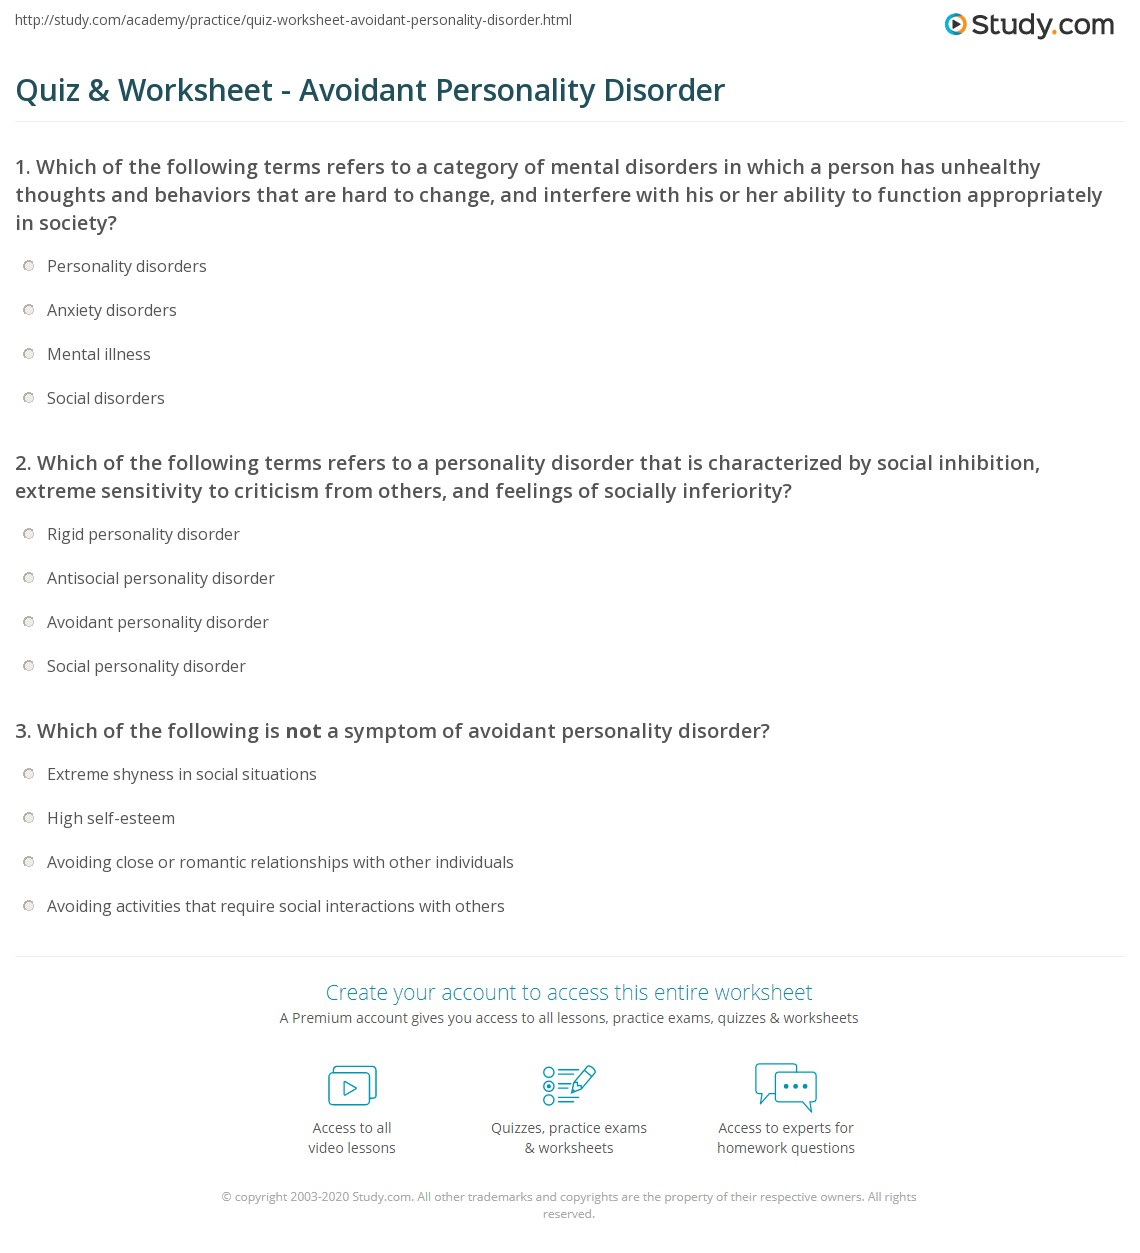 avoidant personality disorder research paper This page deals with personality disorders, which are ways in which personality persistently causes problems for oneself or others.